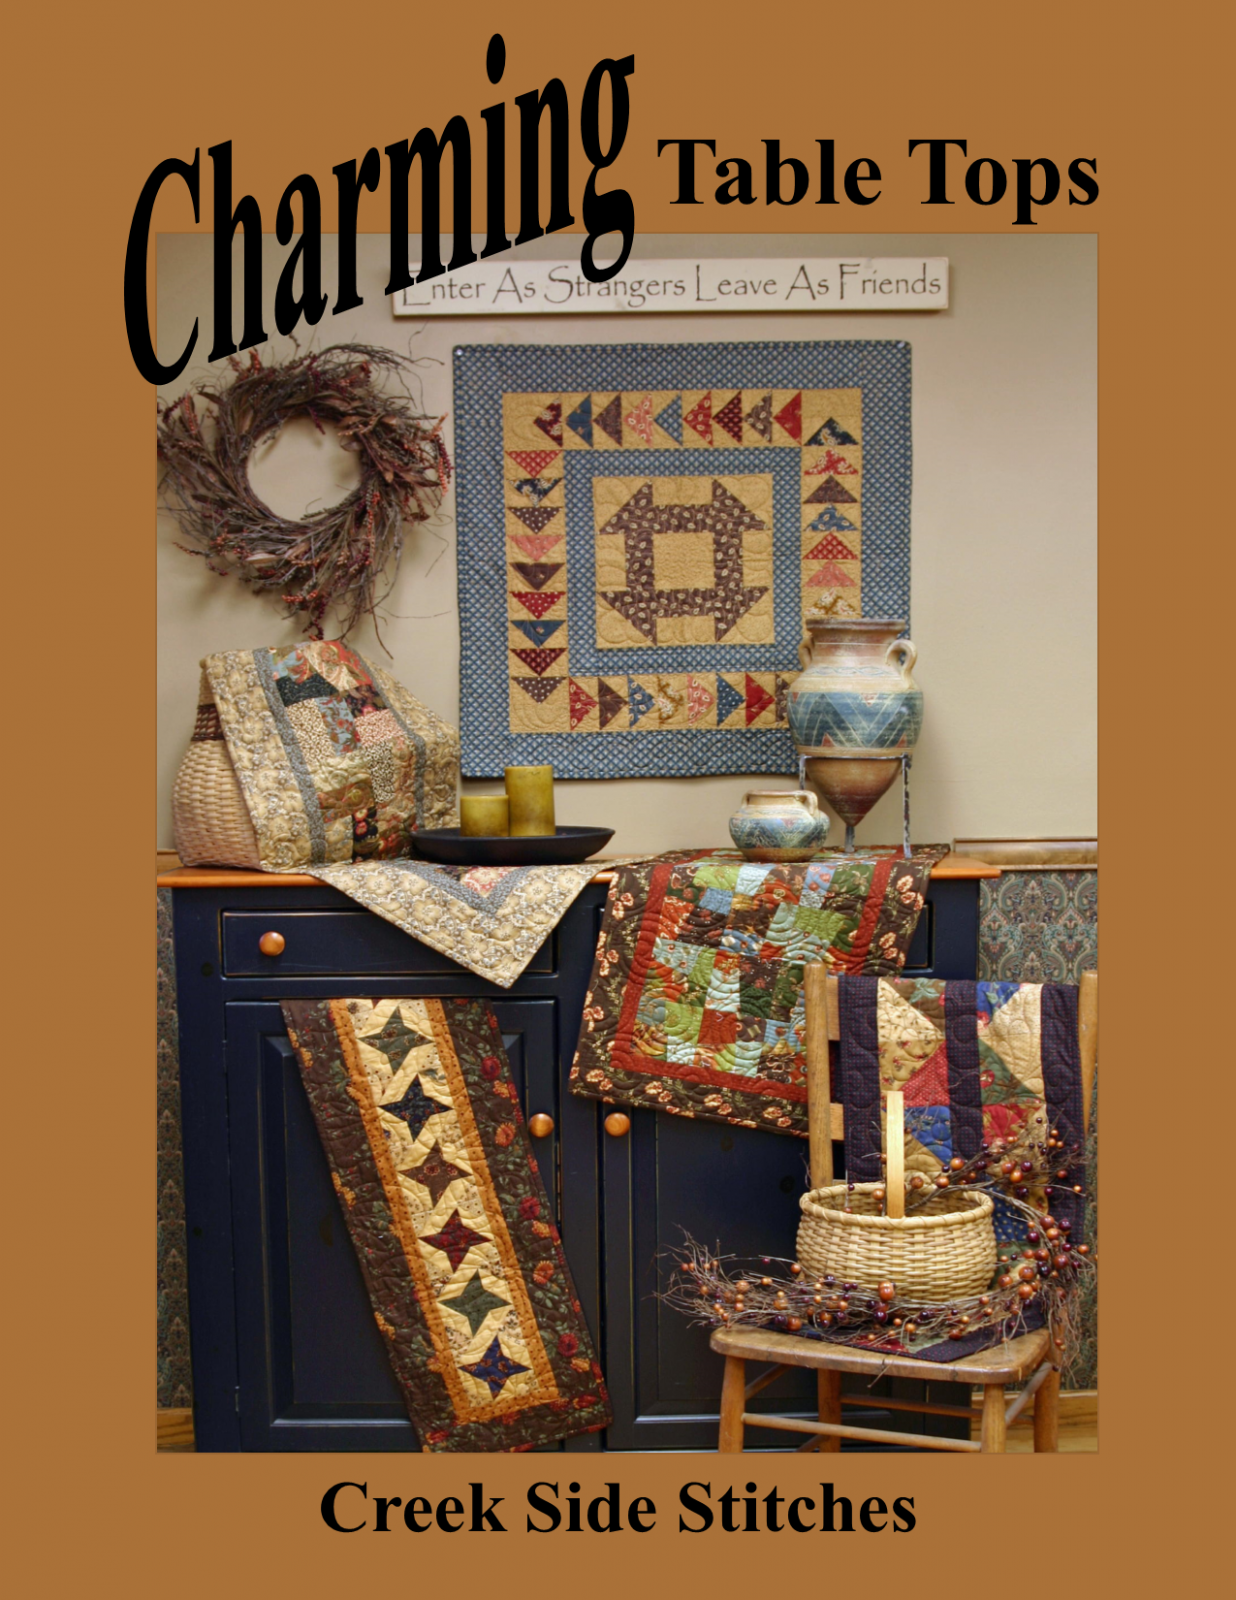 Charming Table Tops